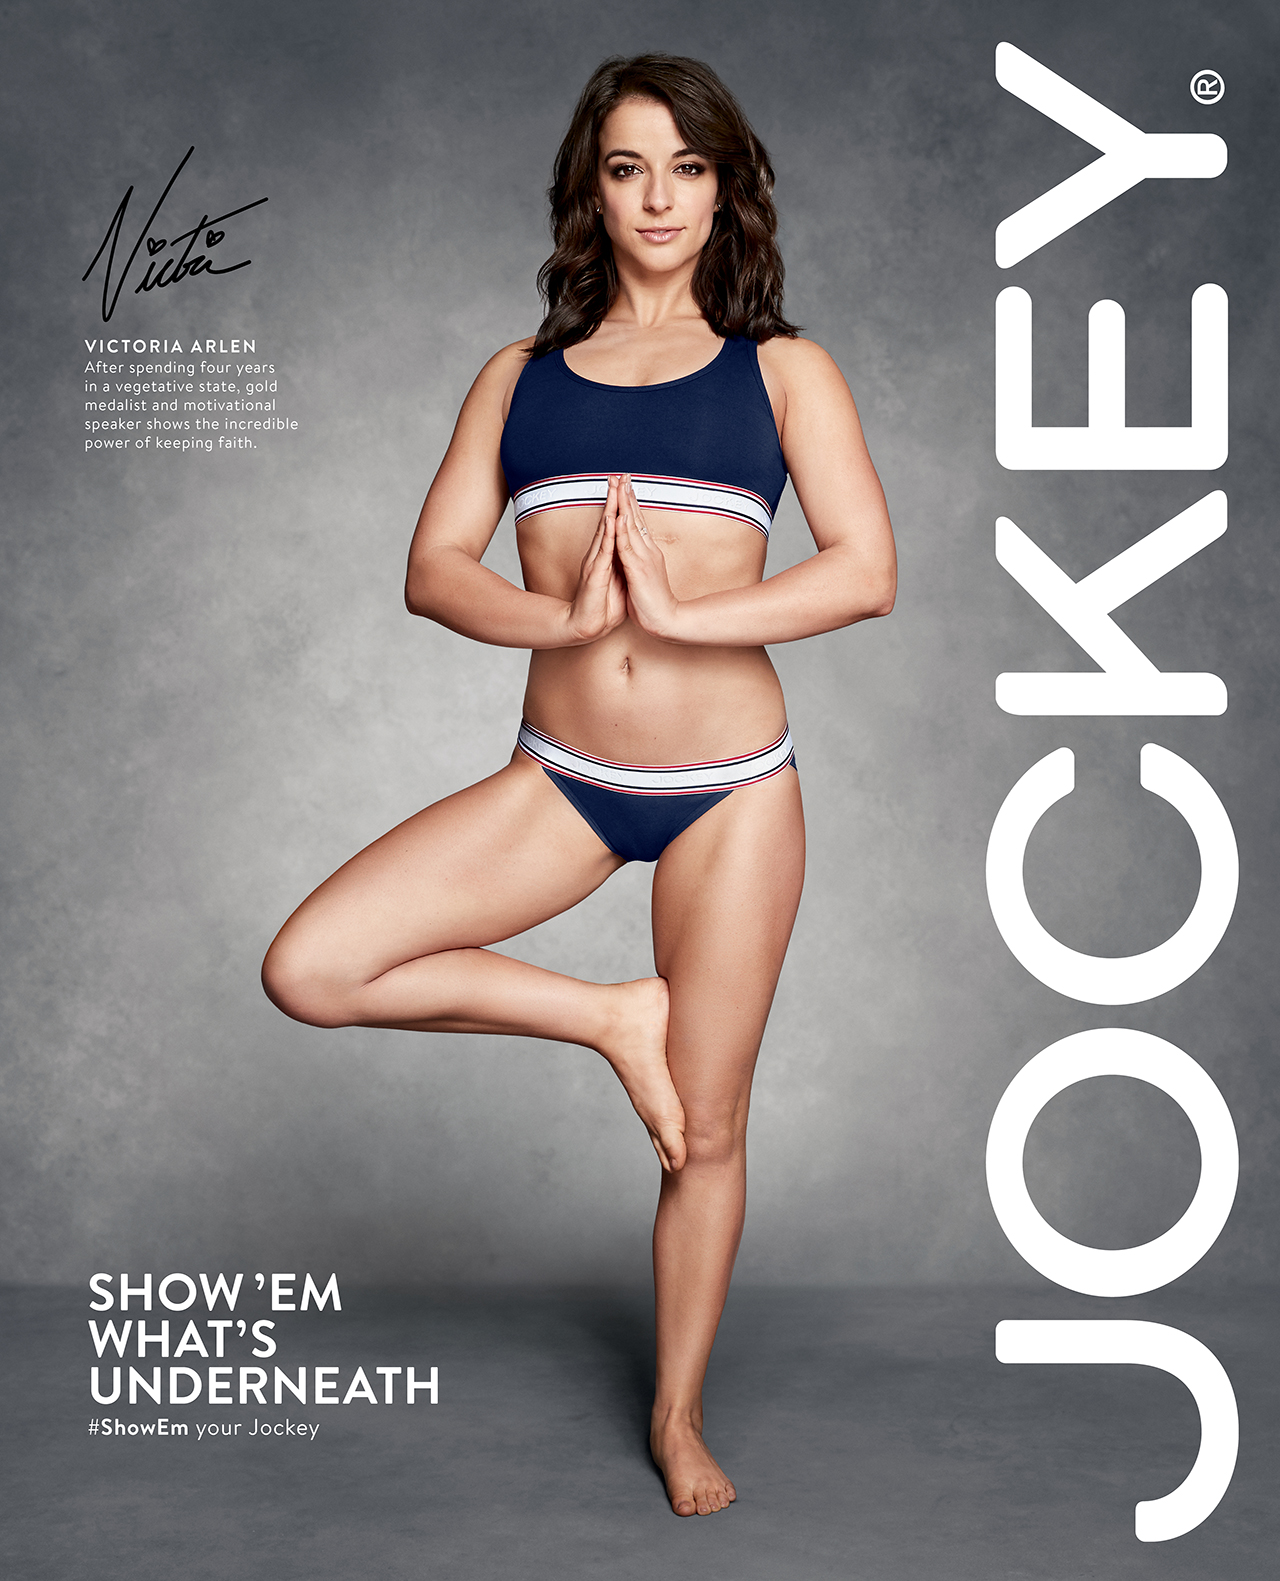 Jockey Underwear: Show You're Jockey' Campaign pics